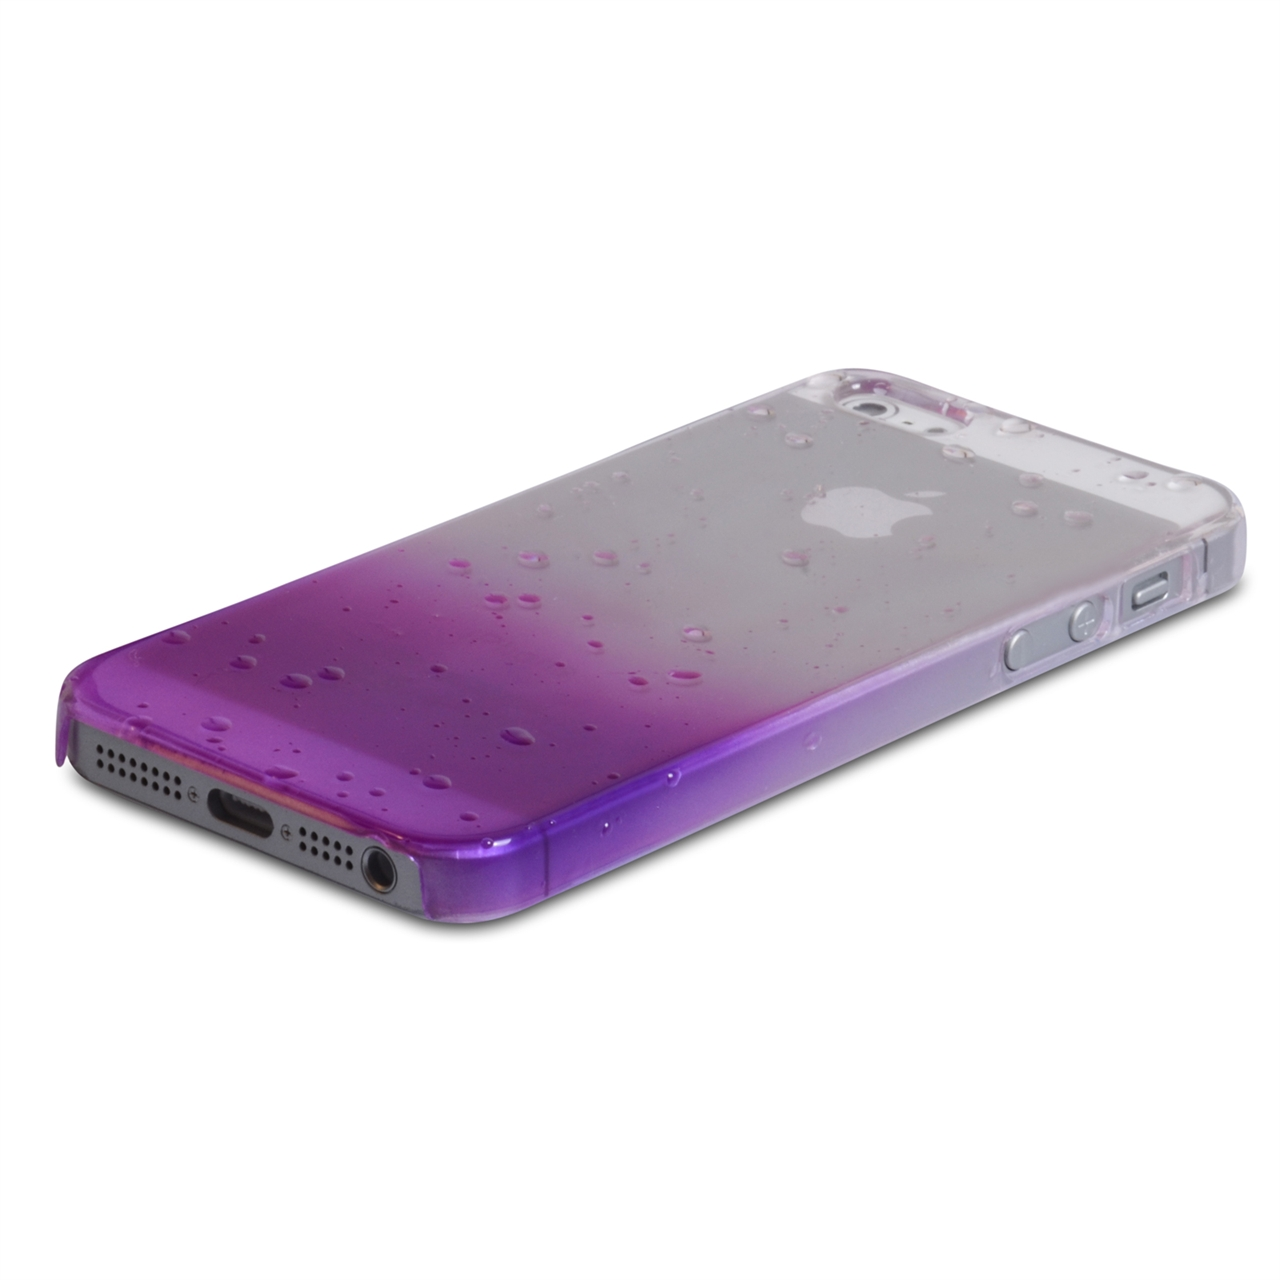 YouSave Accessories iPhone 5 / 5S Purple Raindrop Hard Case